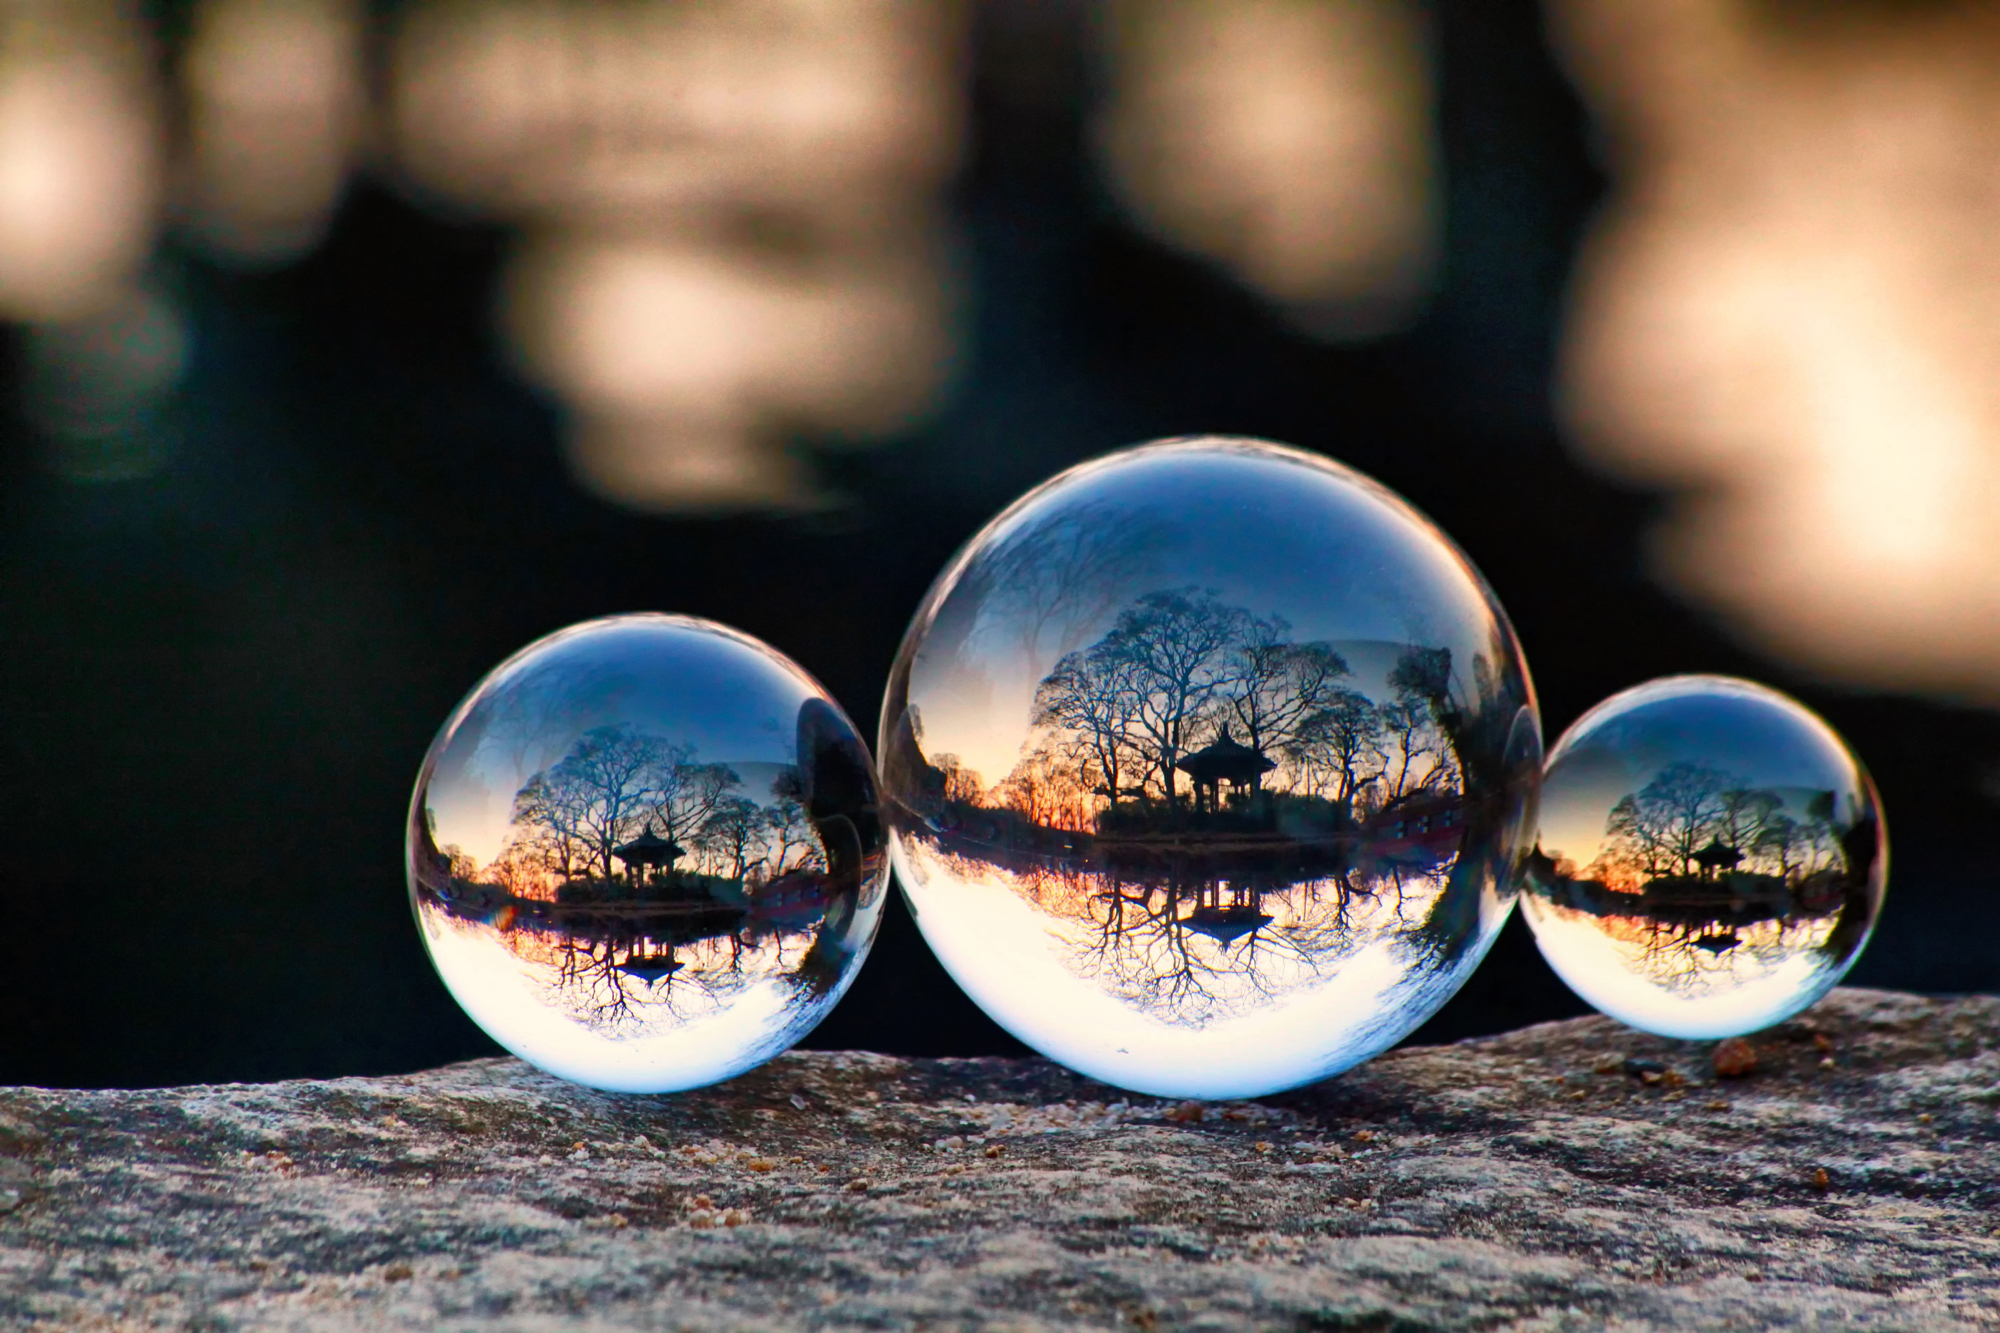 Image: Reflection works very well in lensball photography.